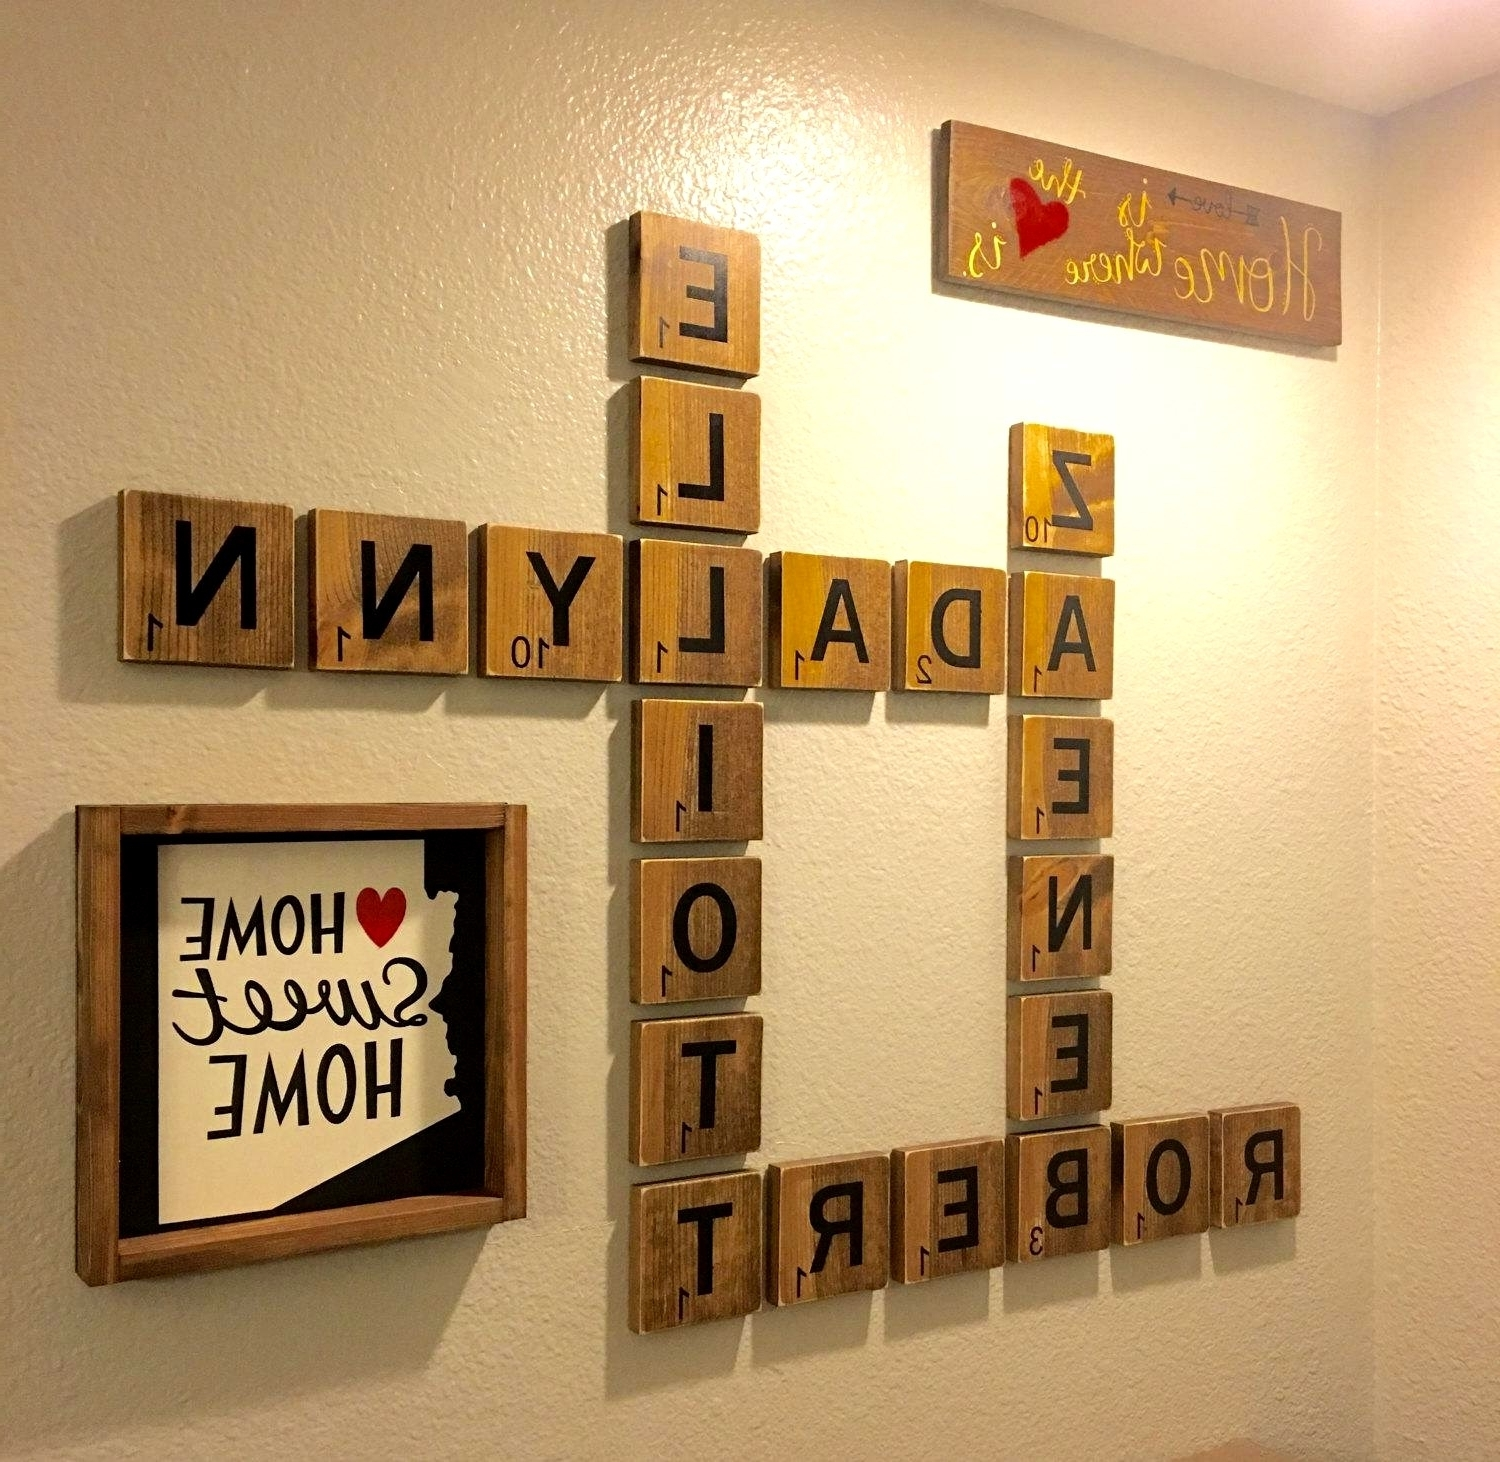 Trendy 25 Layout Scrabble Tiles Wall Art With Scrabble Wall Art (View 16 of 20)